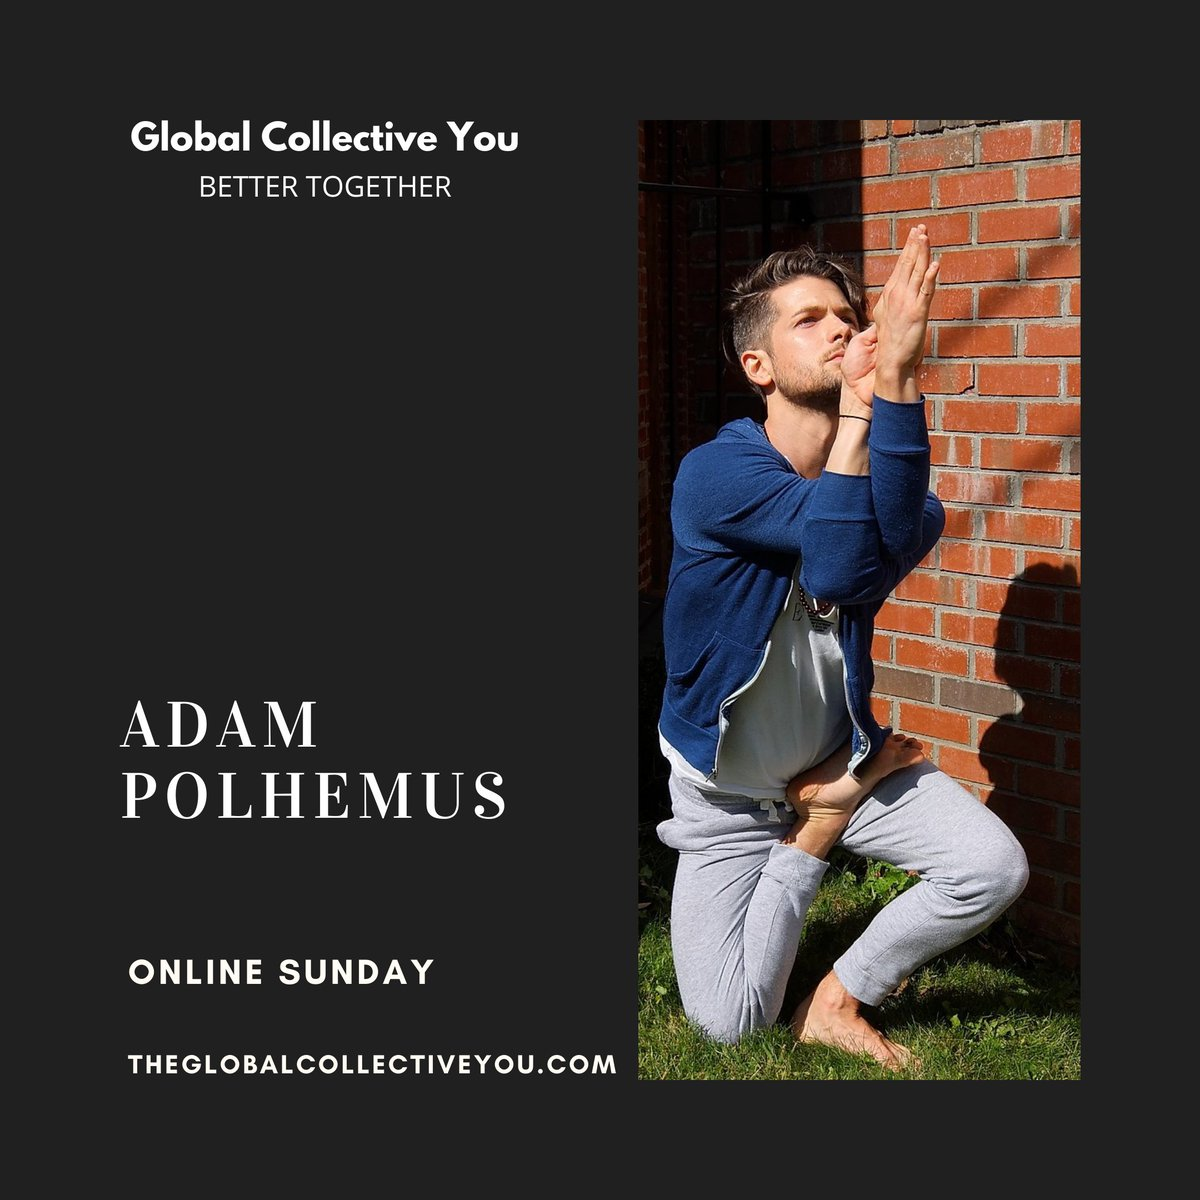 Join Adam Polhemus for an intuitive all-levels vinyasa class - Streaming online this Sunday at the @GlobalCYou  - connecting the world through yoga.   https://t.co/BpuX28XRdd https://t.co/npFZkGZexZ